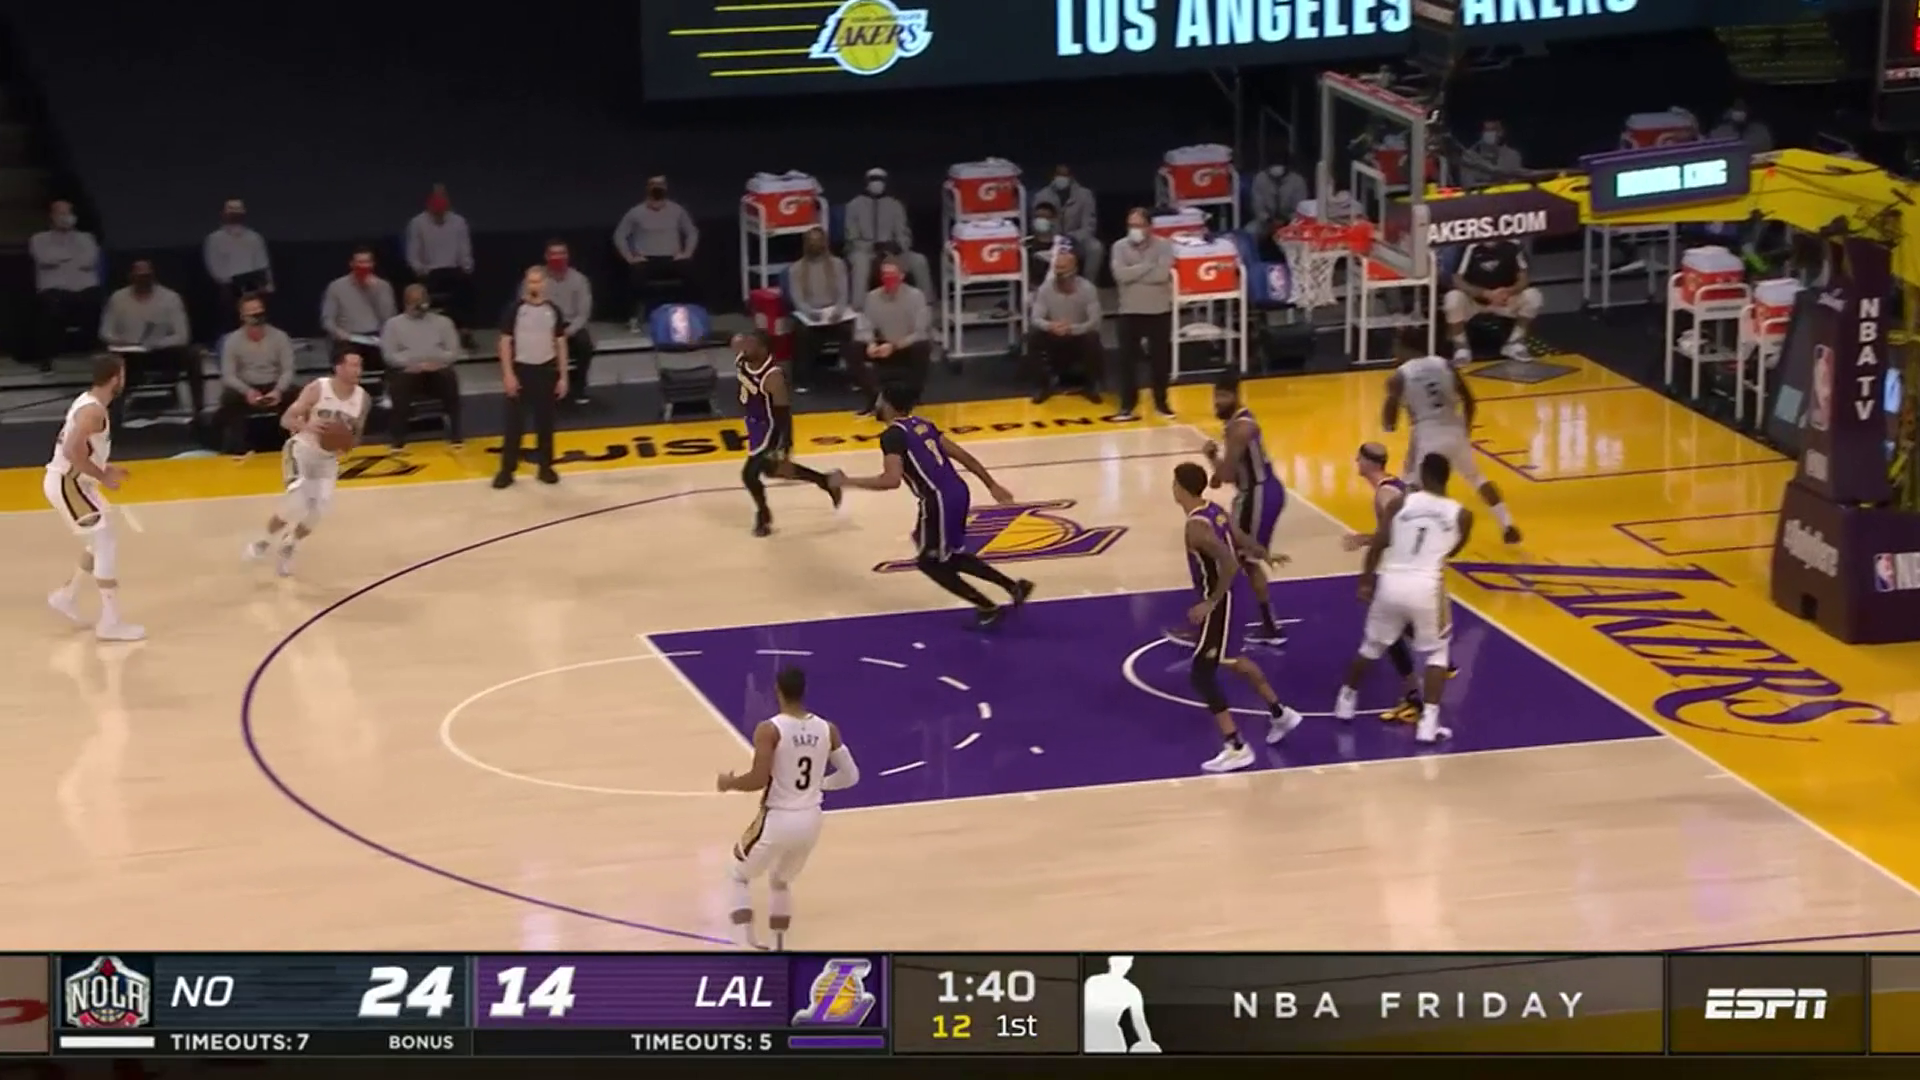 Pelicans-Lakers Highlights: JJ Redick four-point play